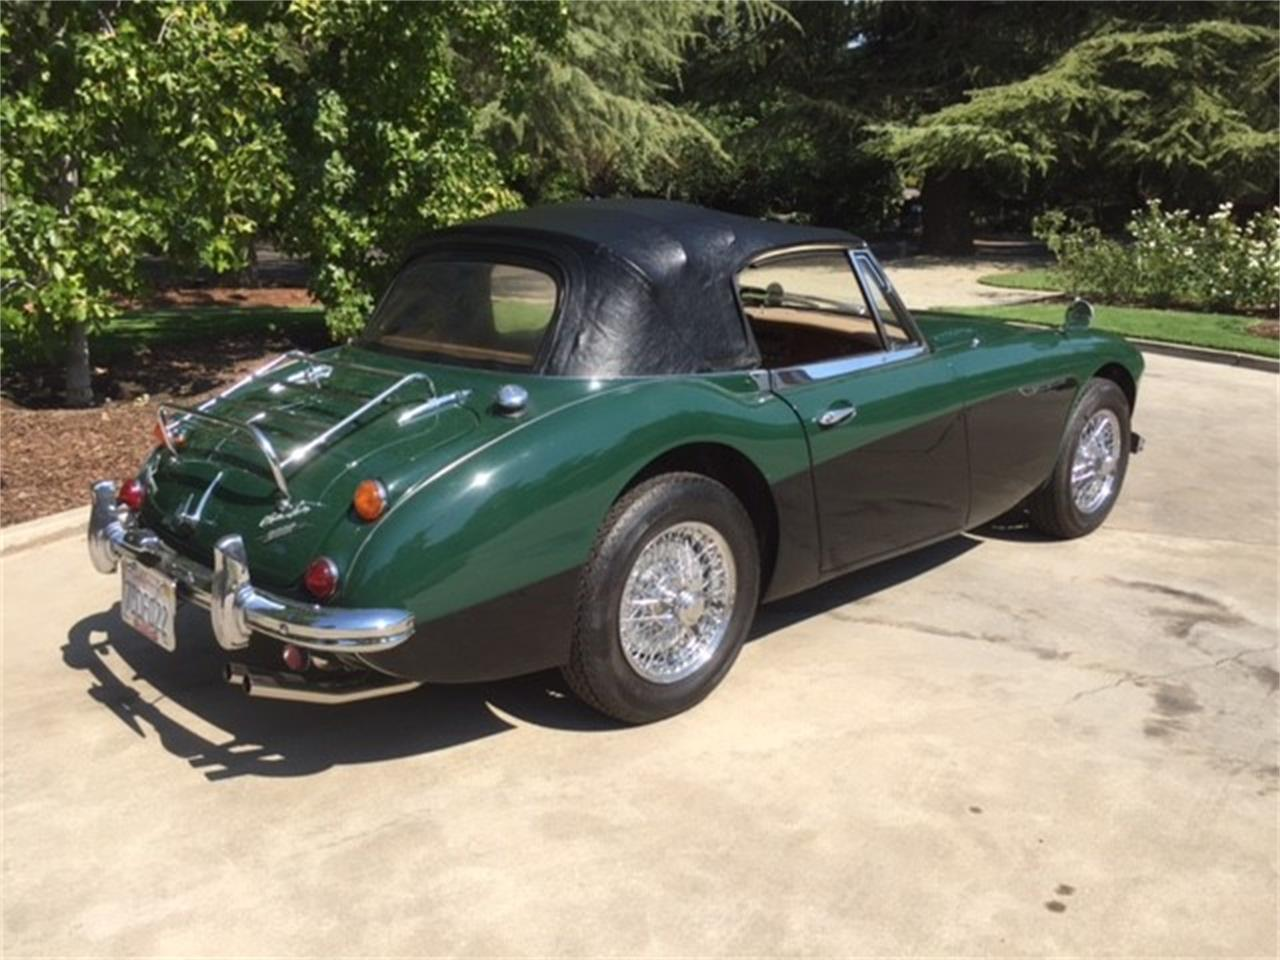 Large Picture of Classic '67 Austin-Healey 3000 - $65,000.00 - LBWQ